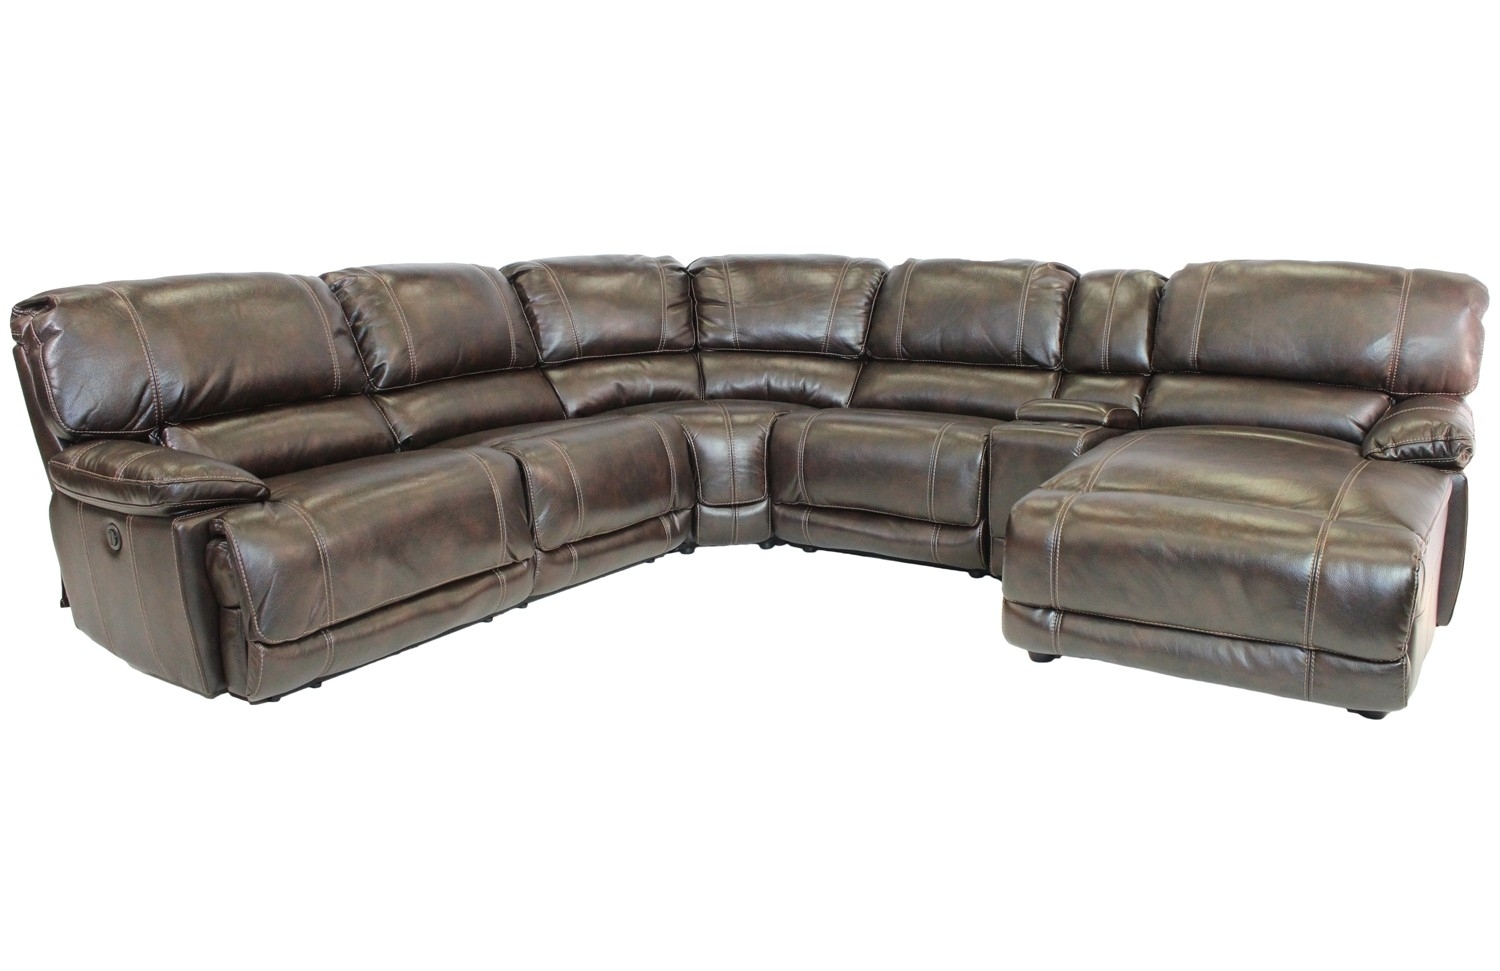 Sectional Sofas | Save Mor Online And In-Store for Aspen 2 Piece Sectionals With Laf Chaise (Image 28 of 30)